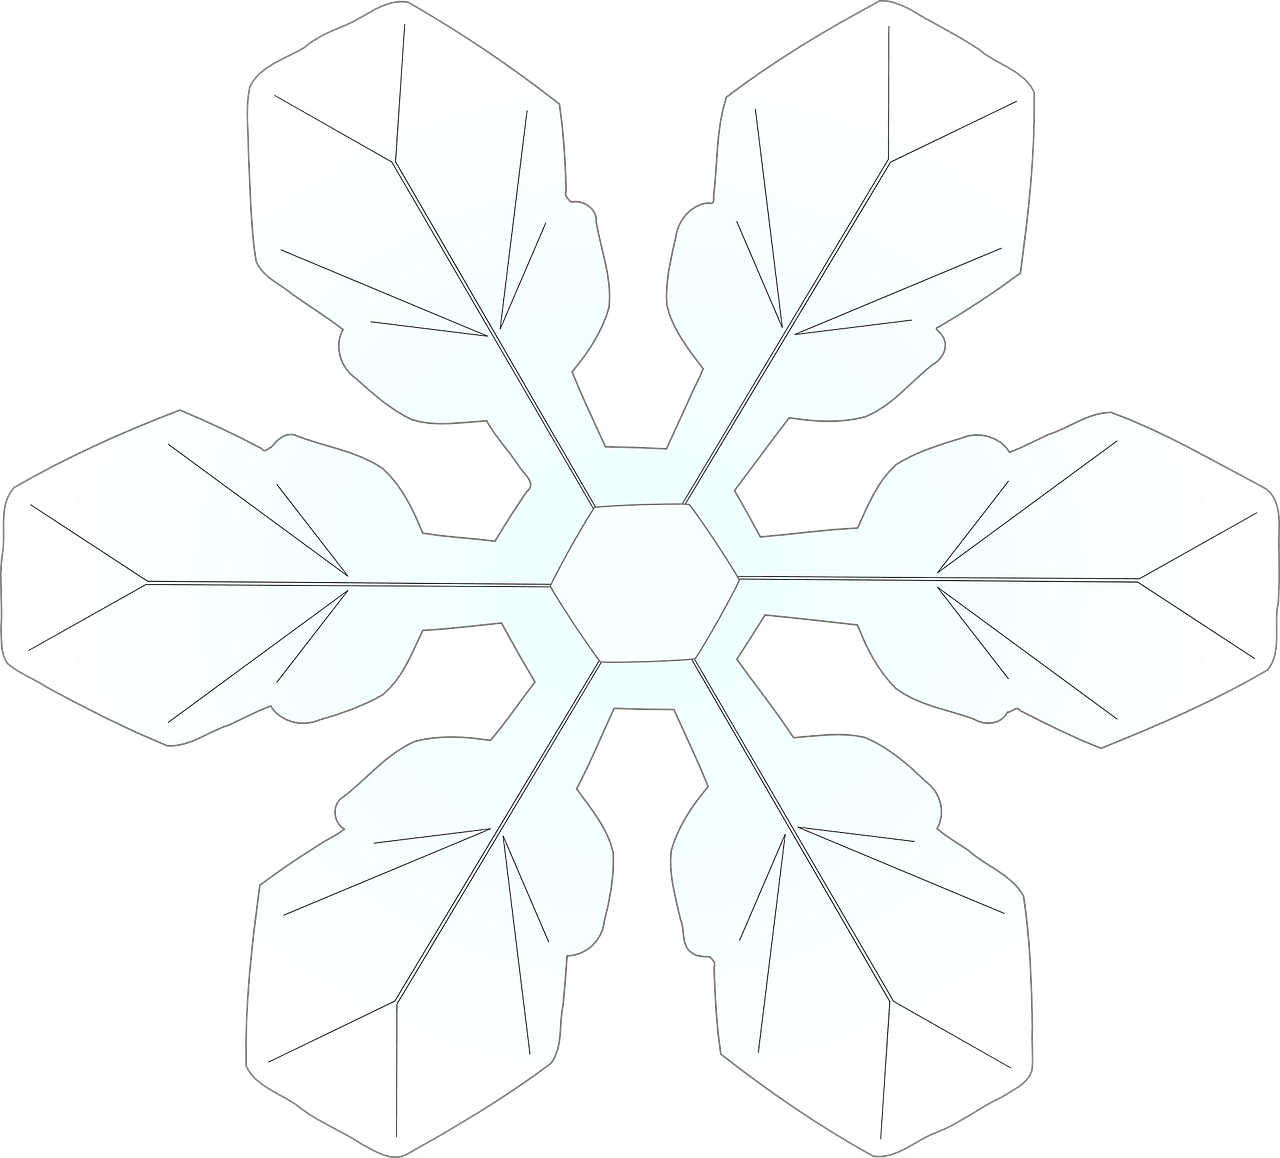 Snowflake Colouring Pages - In The Playroom